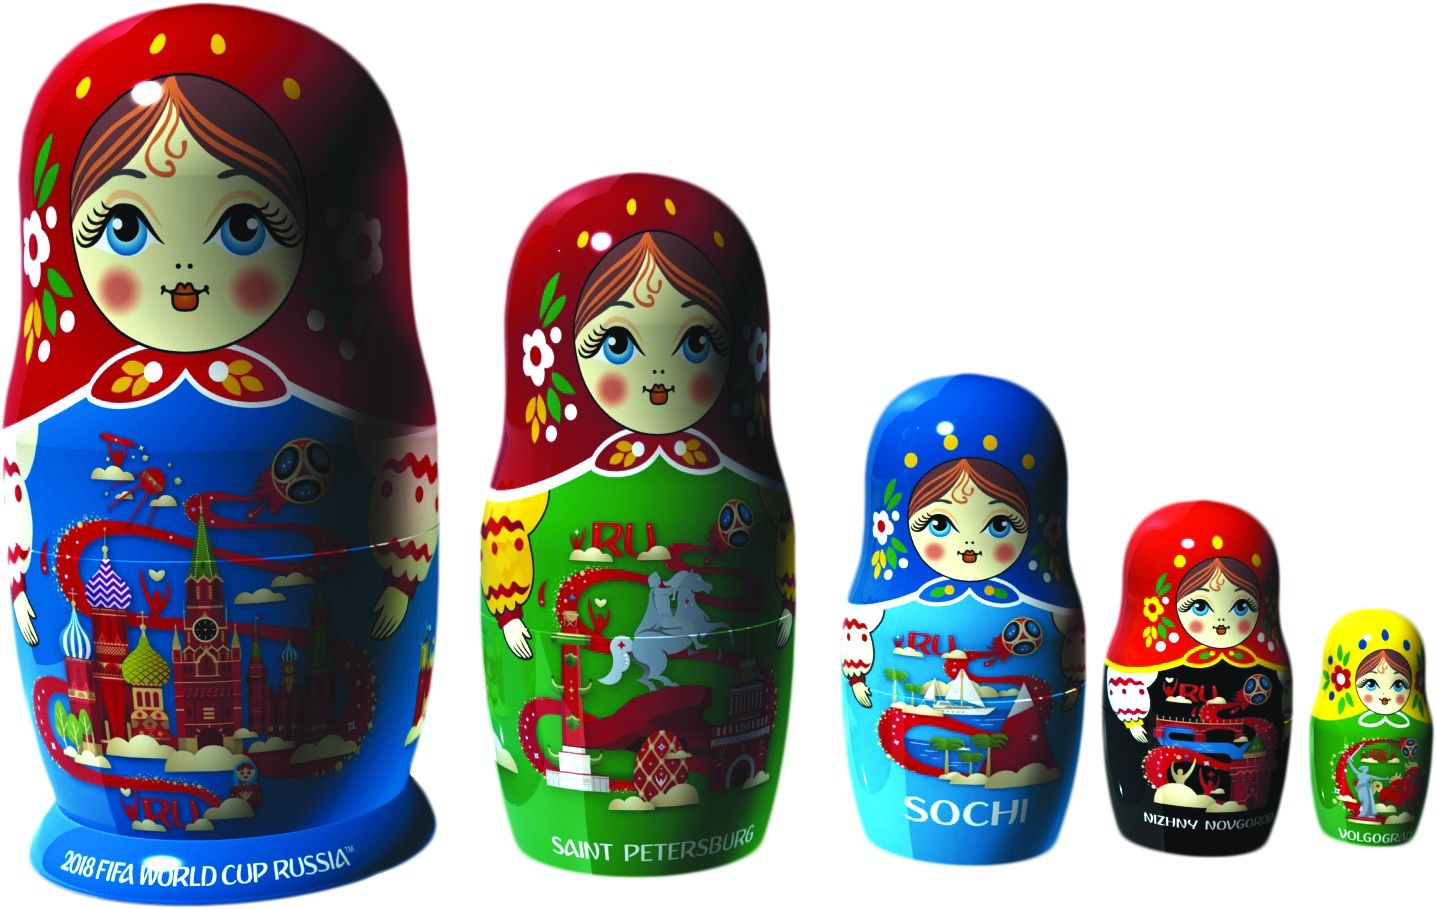 Soccer World Cup 2018 Russian Stacking Nesting Dolls Matryoshka set 5 Pcs